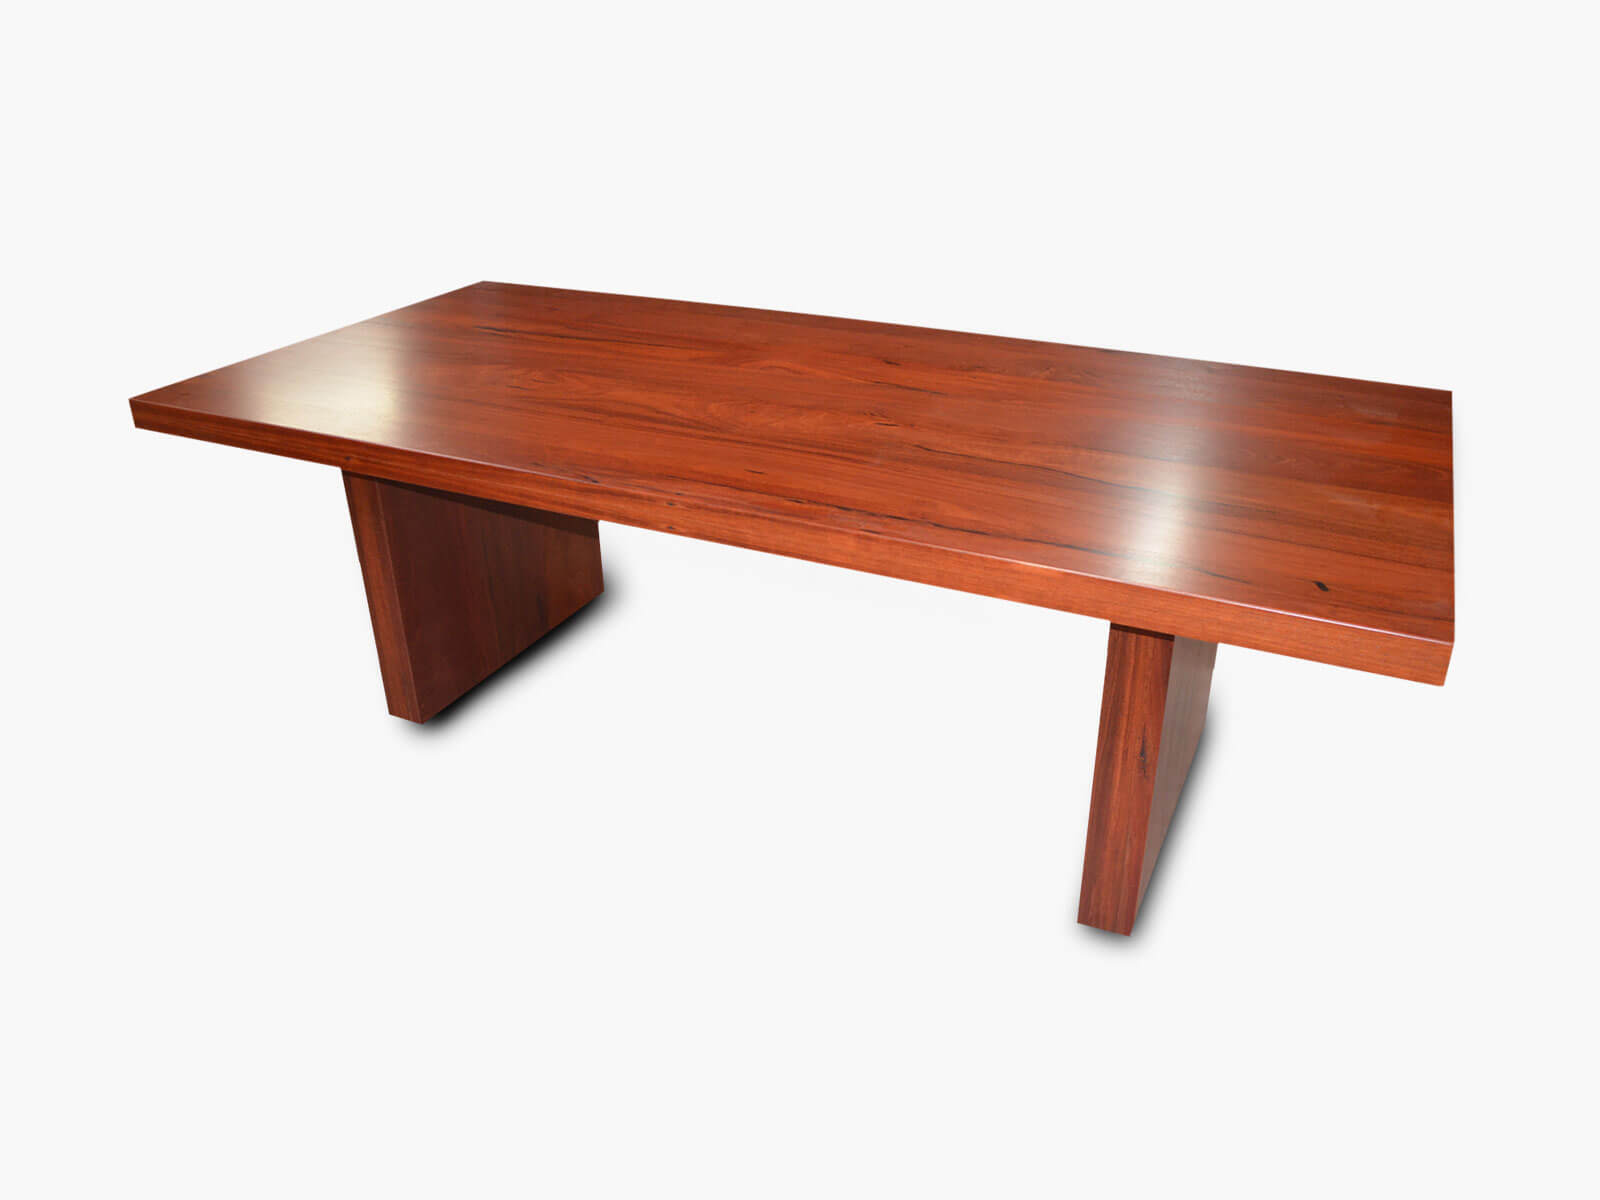 Dampier Jarrah Dining table